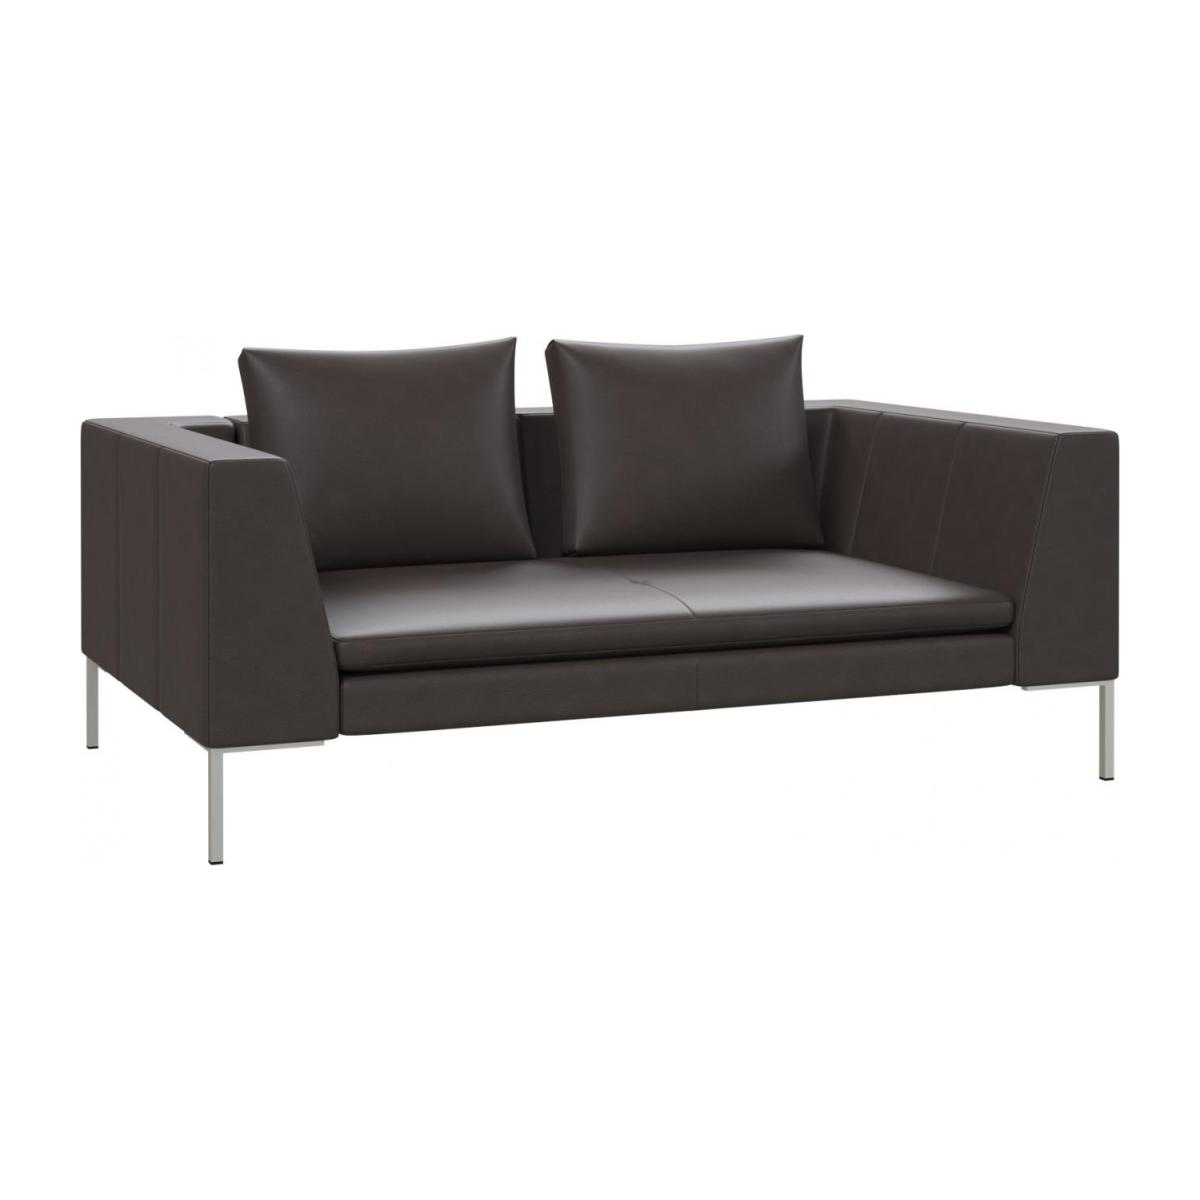 2 seater sofa in Savoy semi-aniline leather, dark brown amaretto